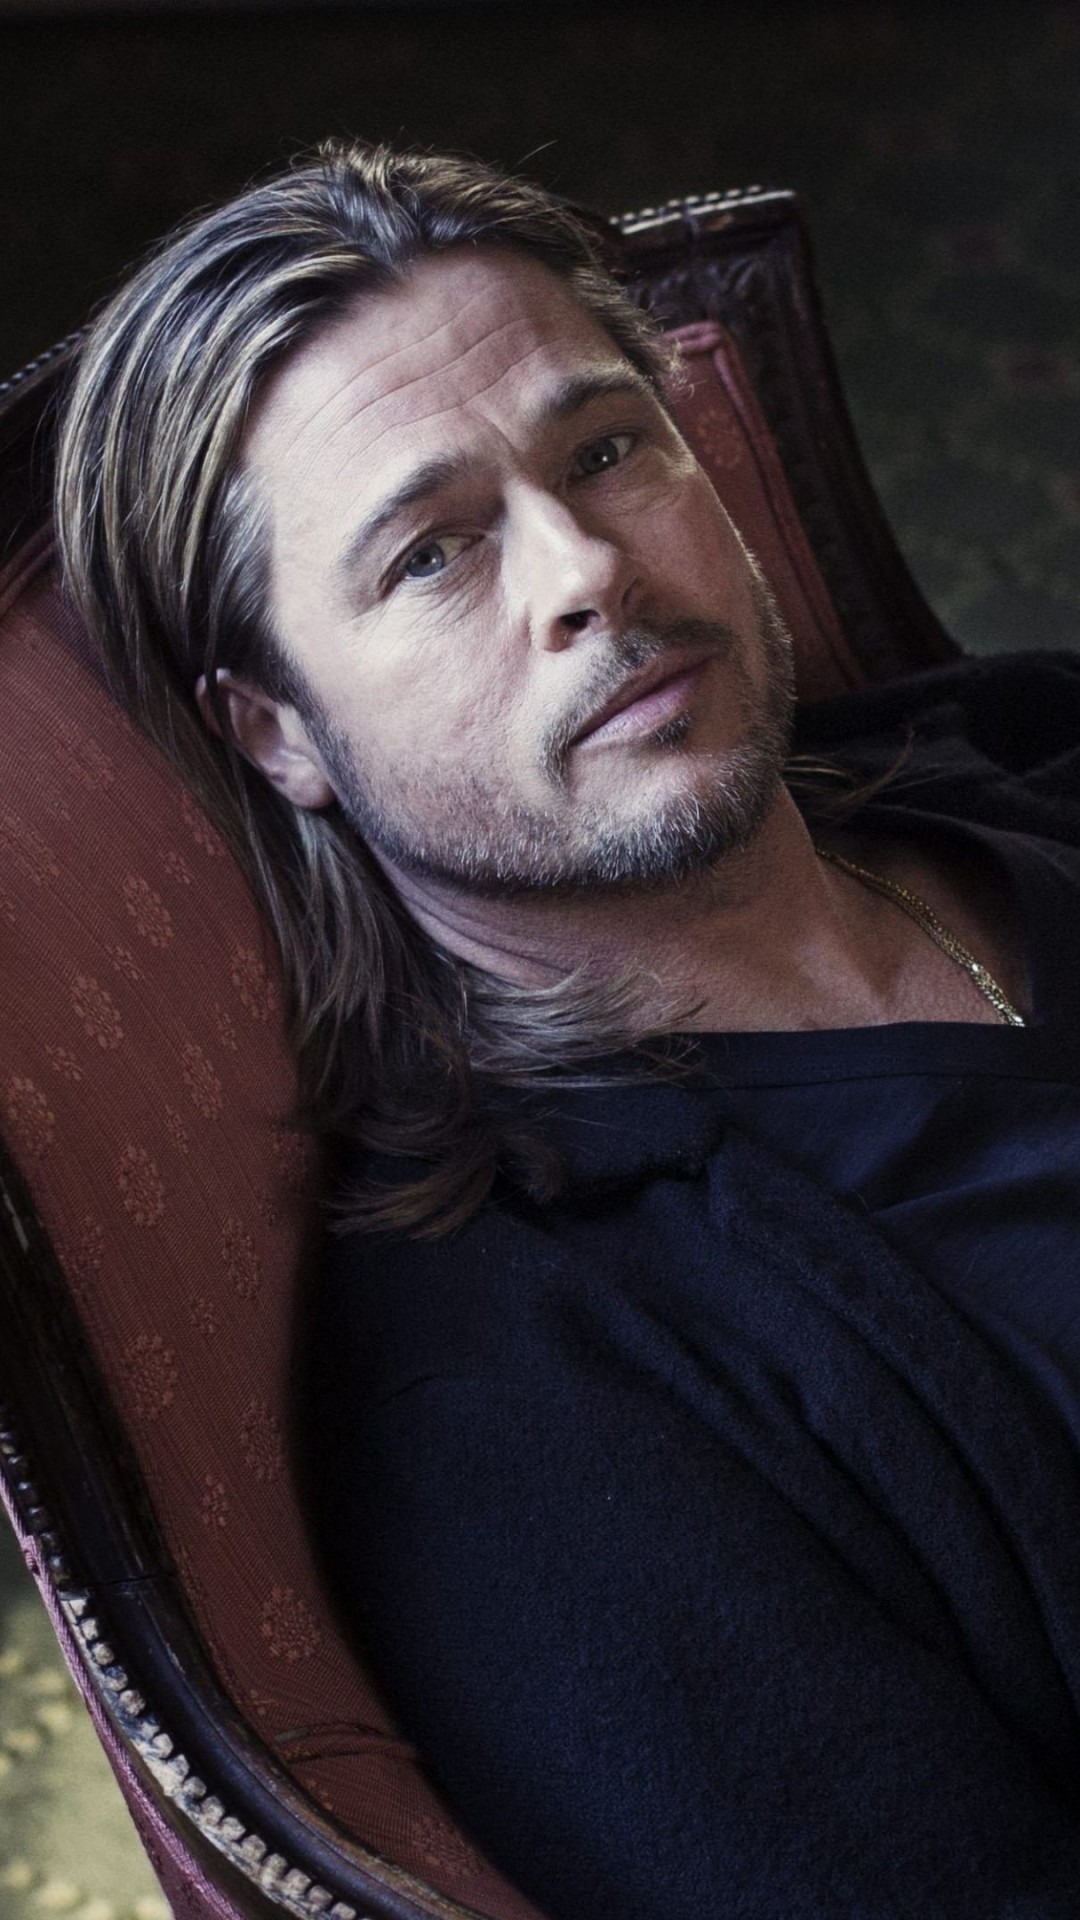 Brad Pitt Sitting On Chair Wallpaper for Motorola Moto X